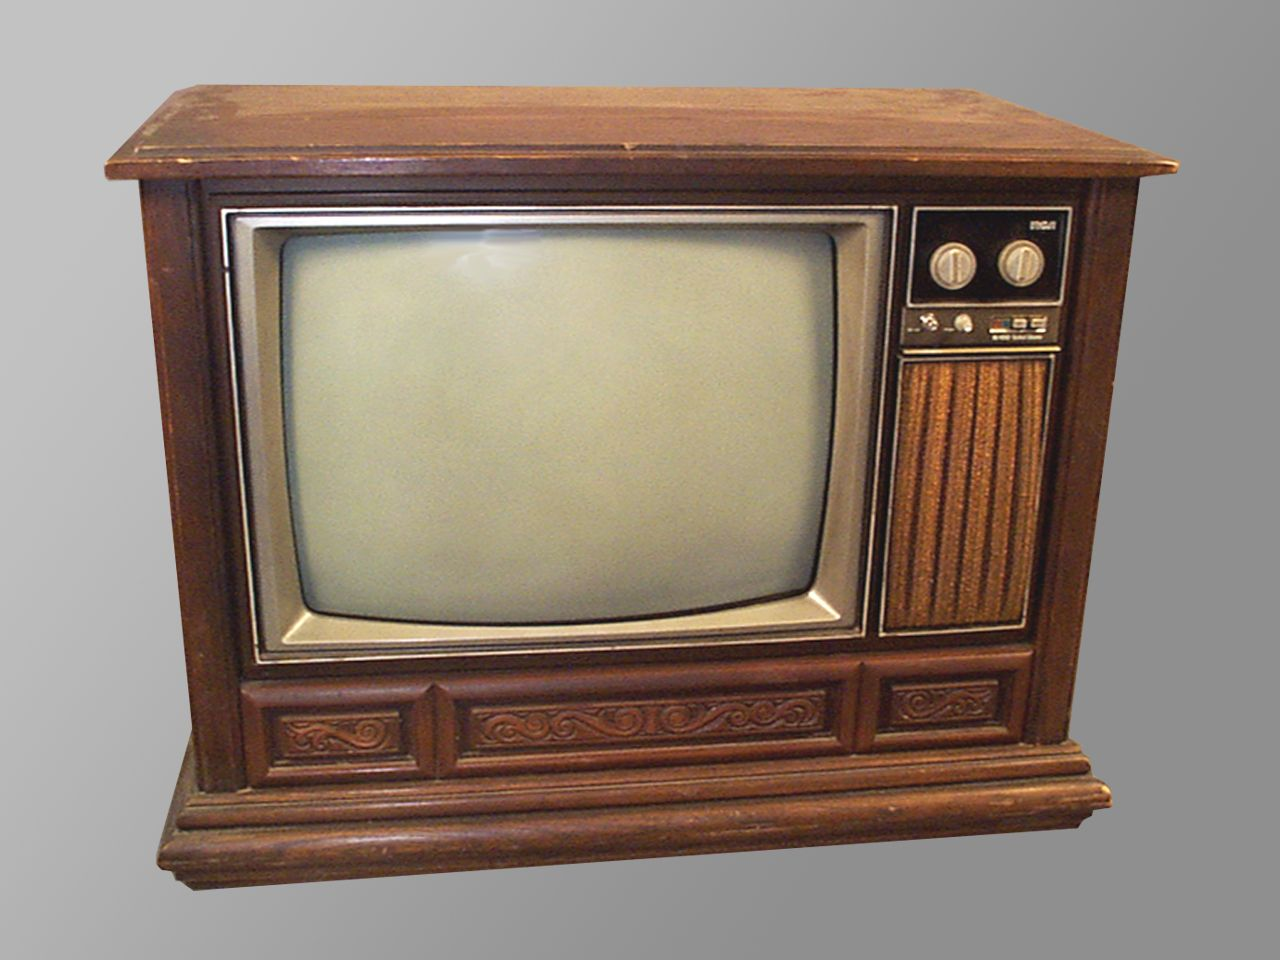 Television sets in the 1980s were often enclosed in wood for 80s furniture